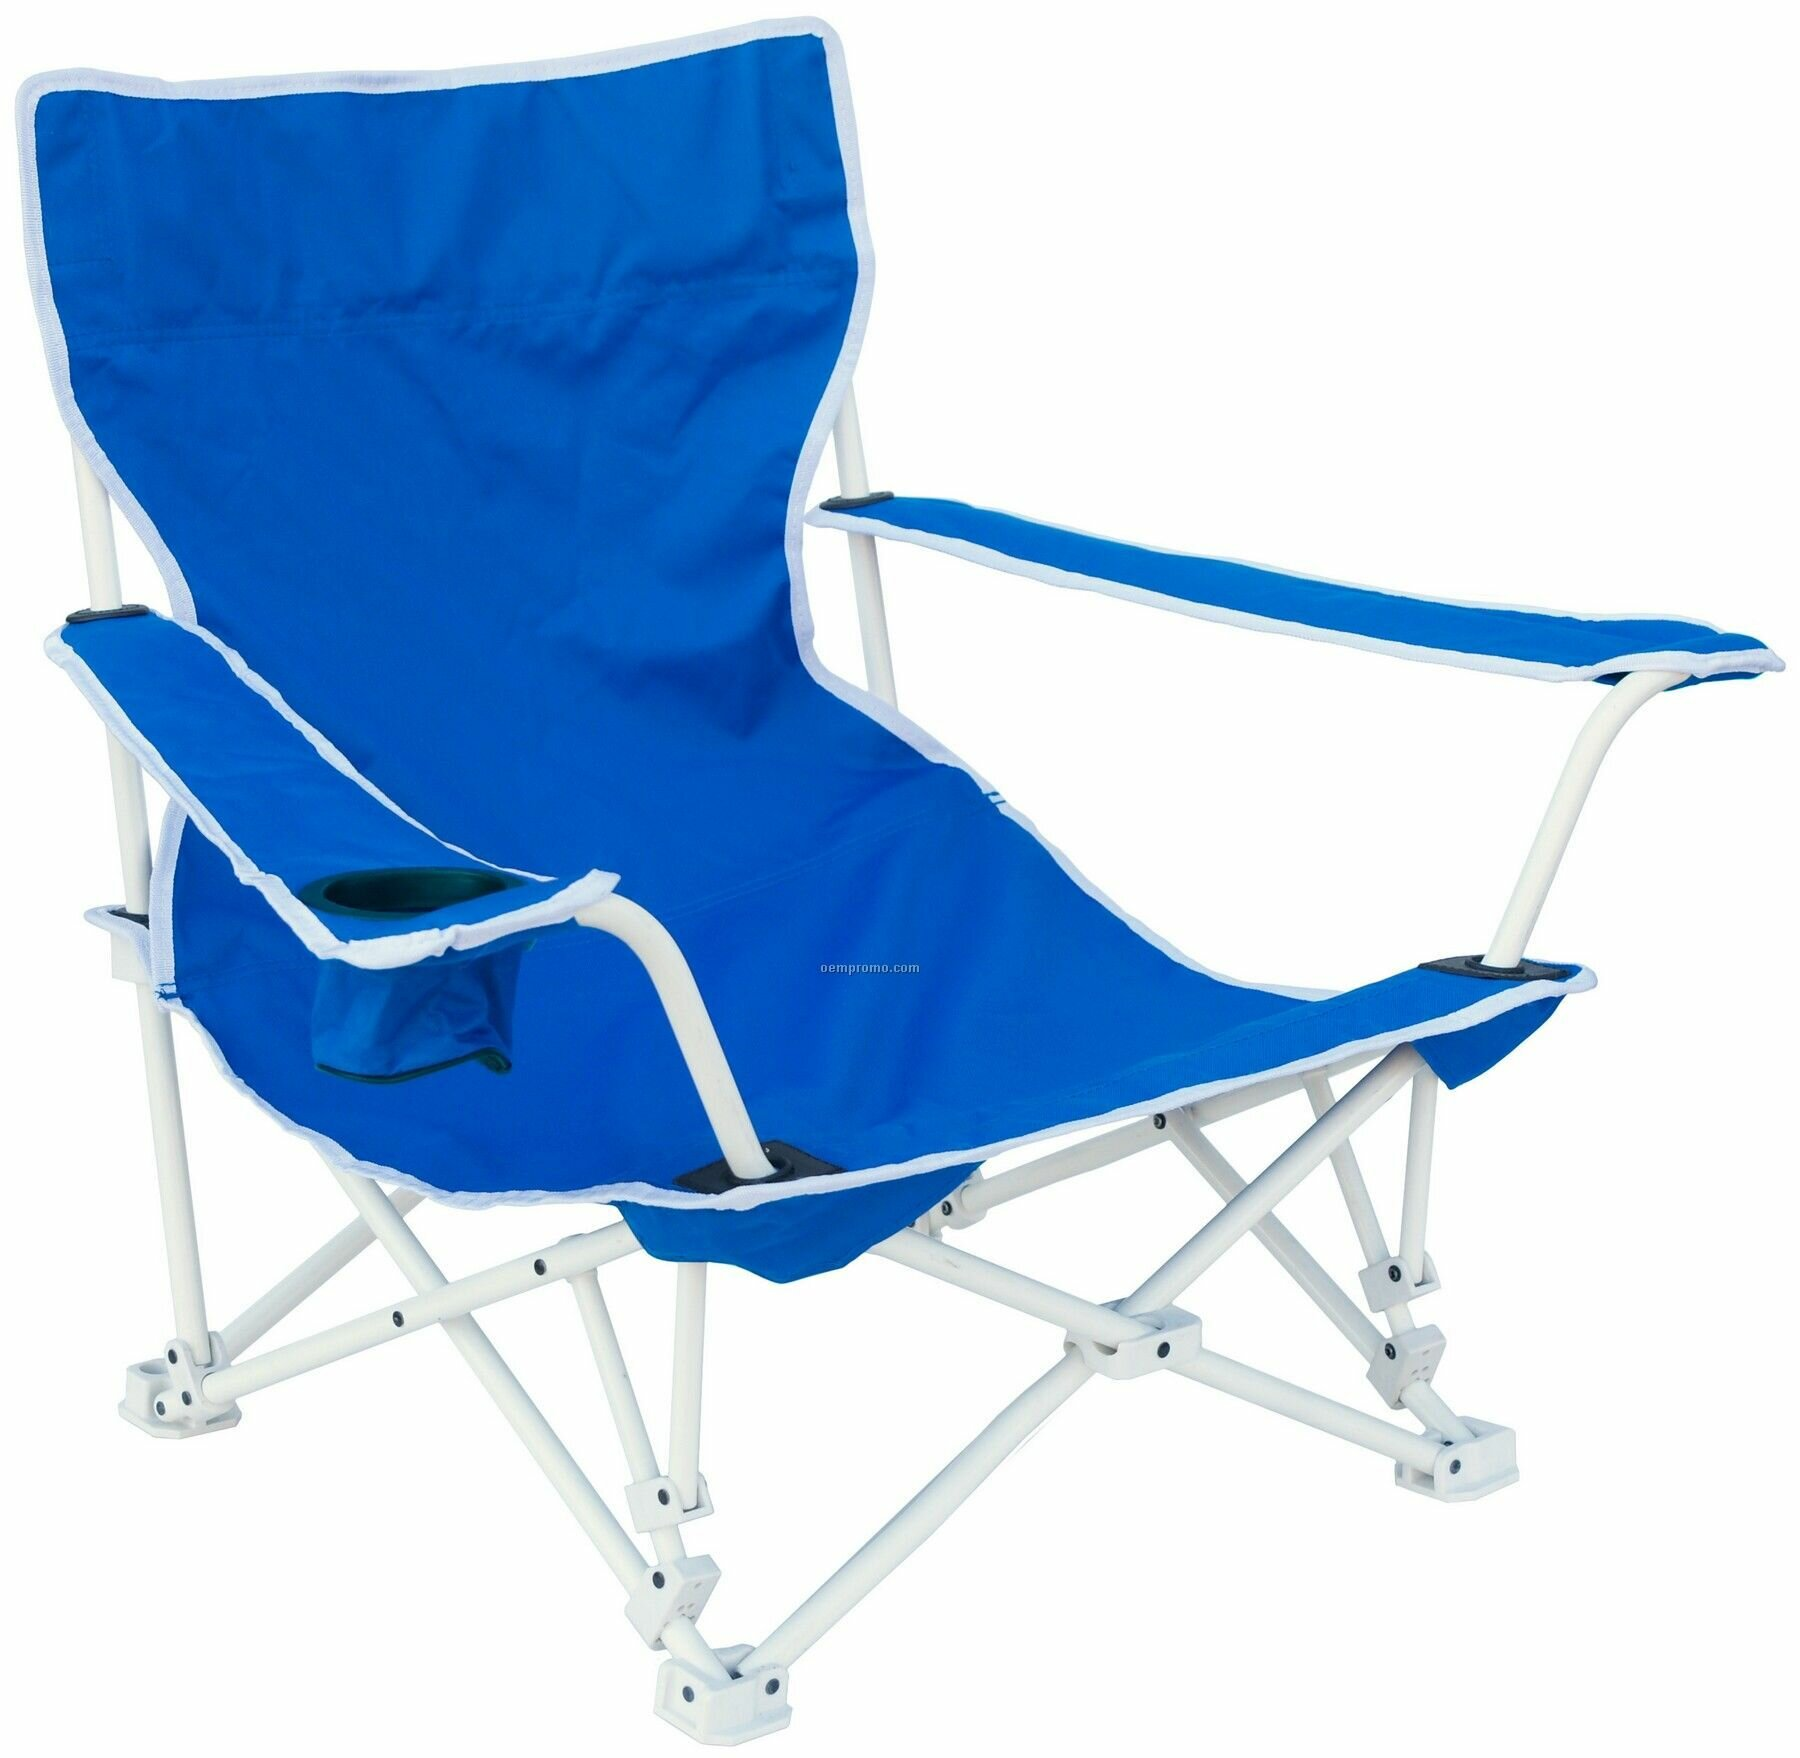 Folding Beach Lounge | Tri Fold Beach Chair | Beach Chairs with Backpack Straps